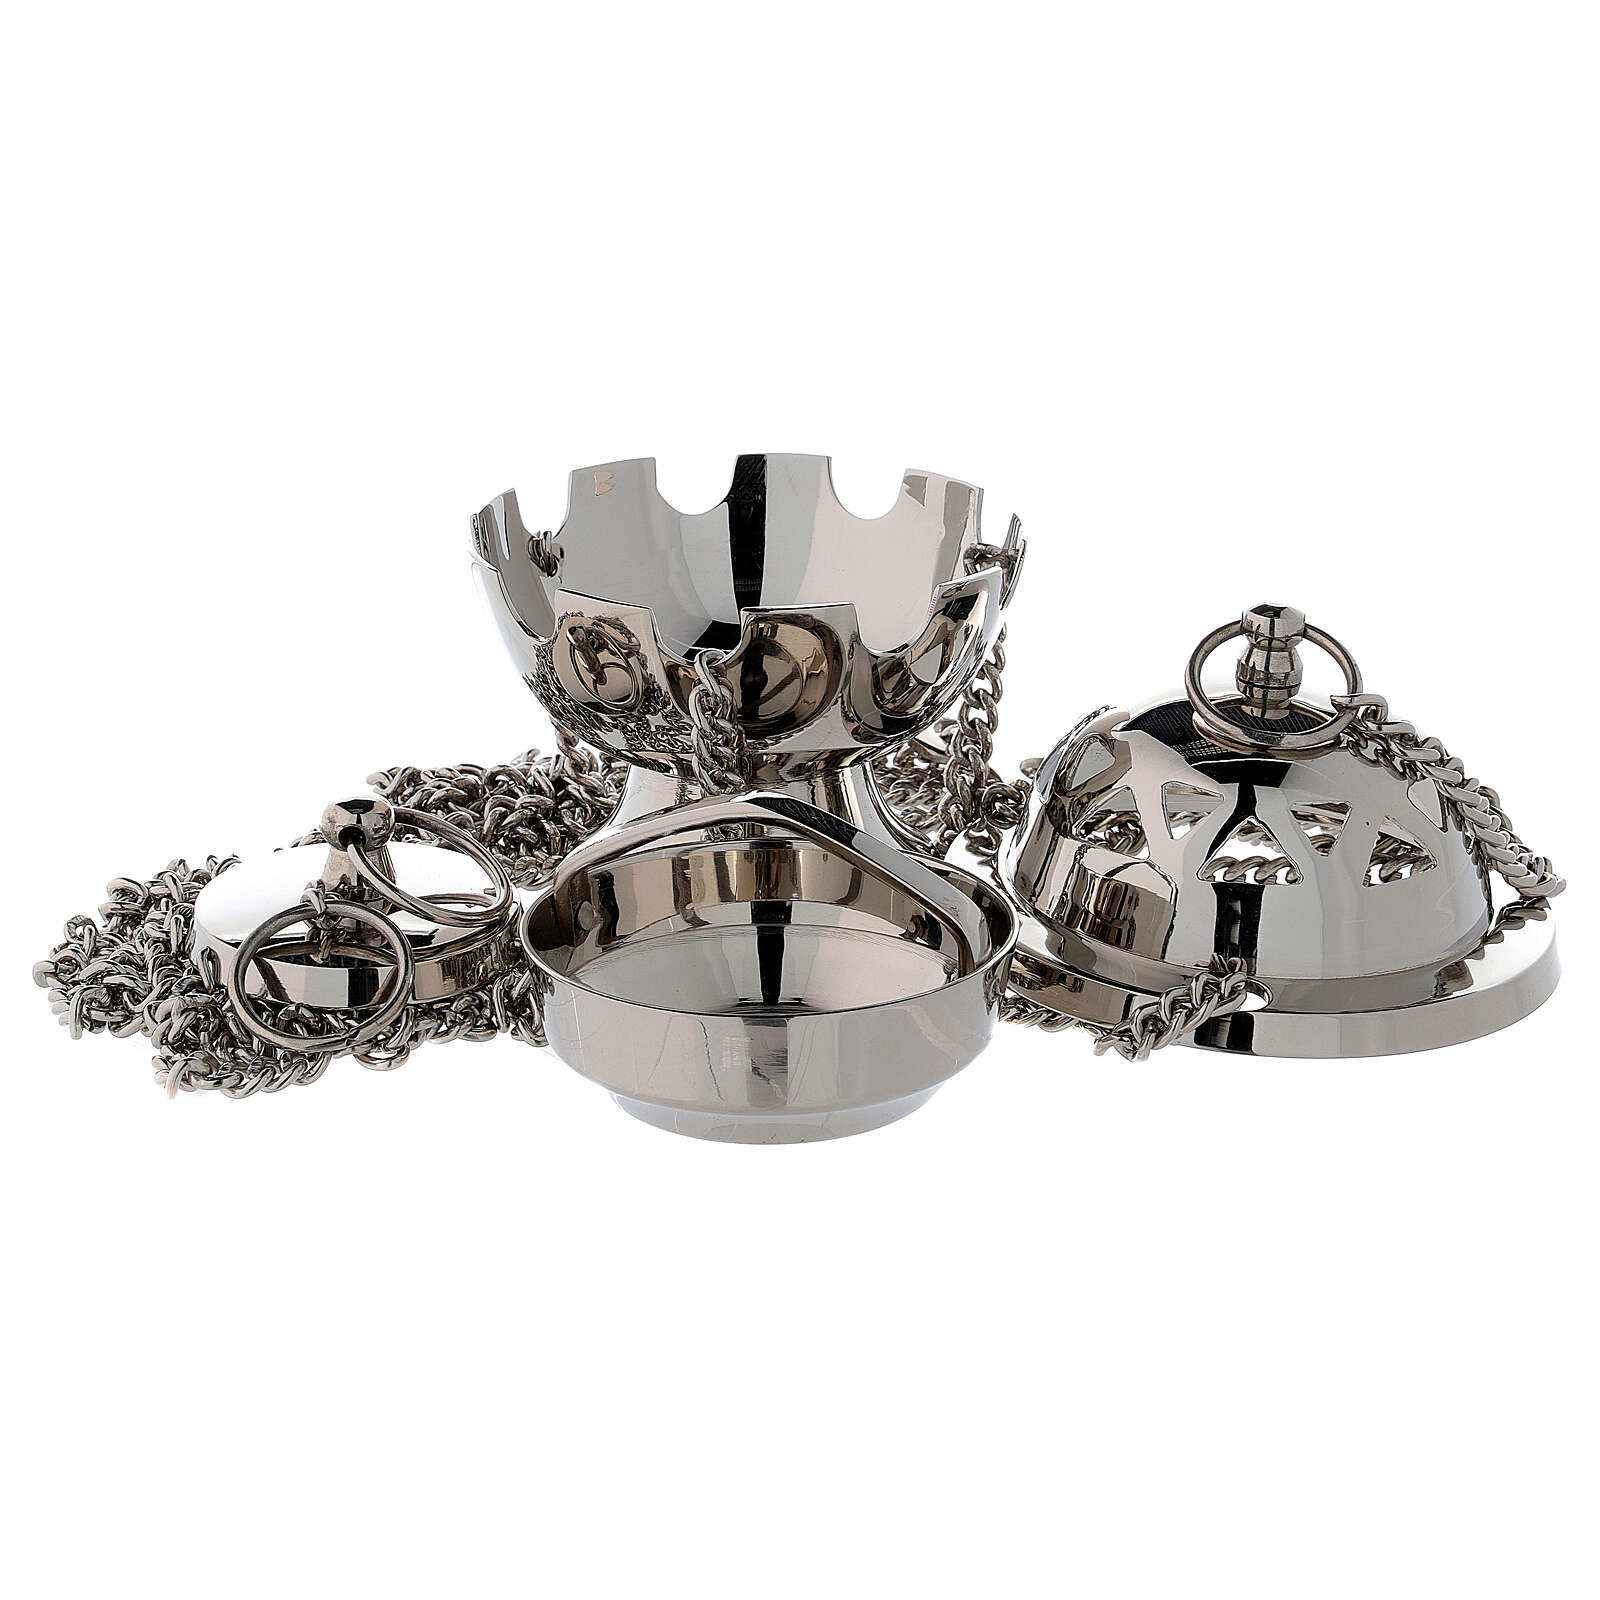 Spherical thurible with triangular holes nickel-plated brass 4 1/4 in 3